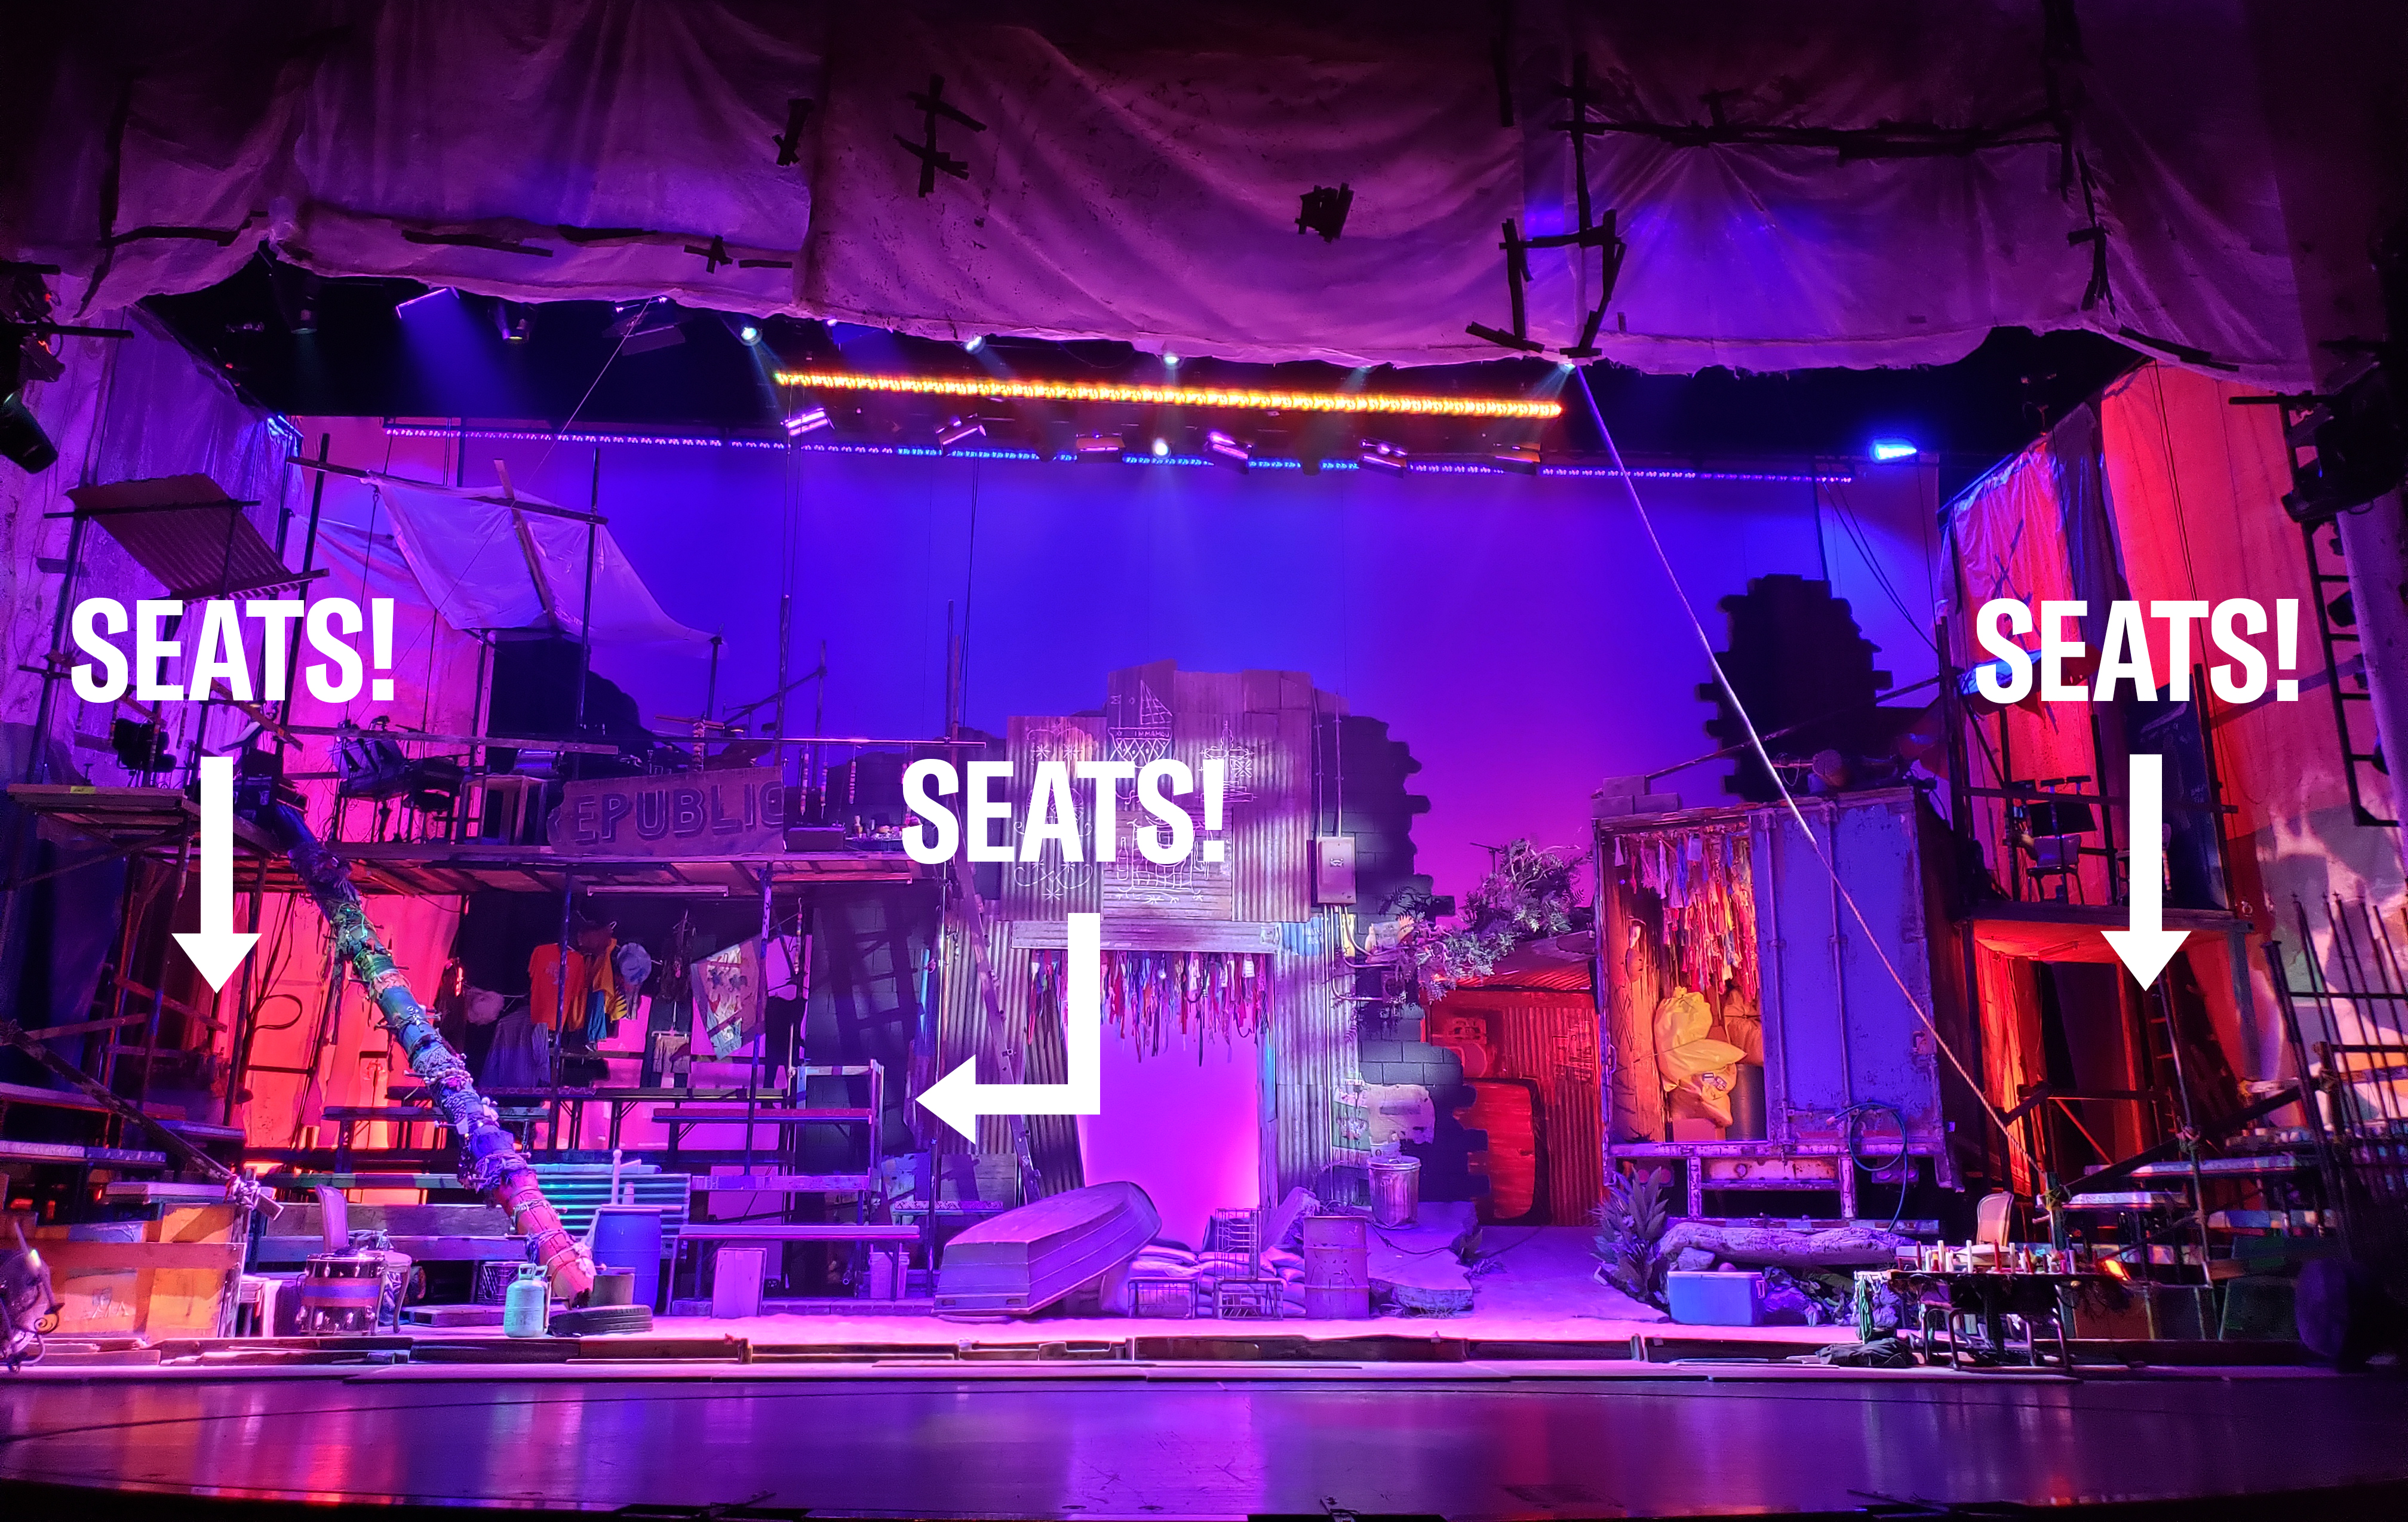 <b>Once On This Island - Onstage Seating</b>